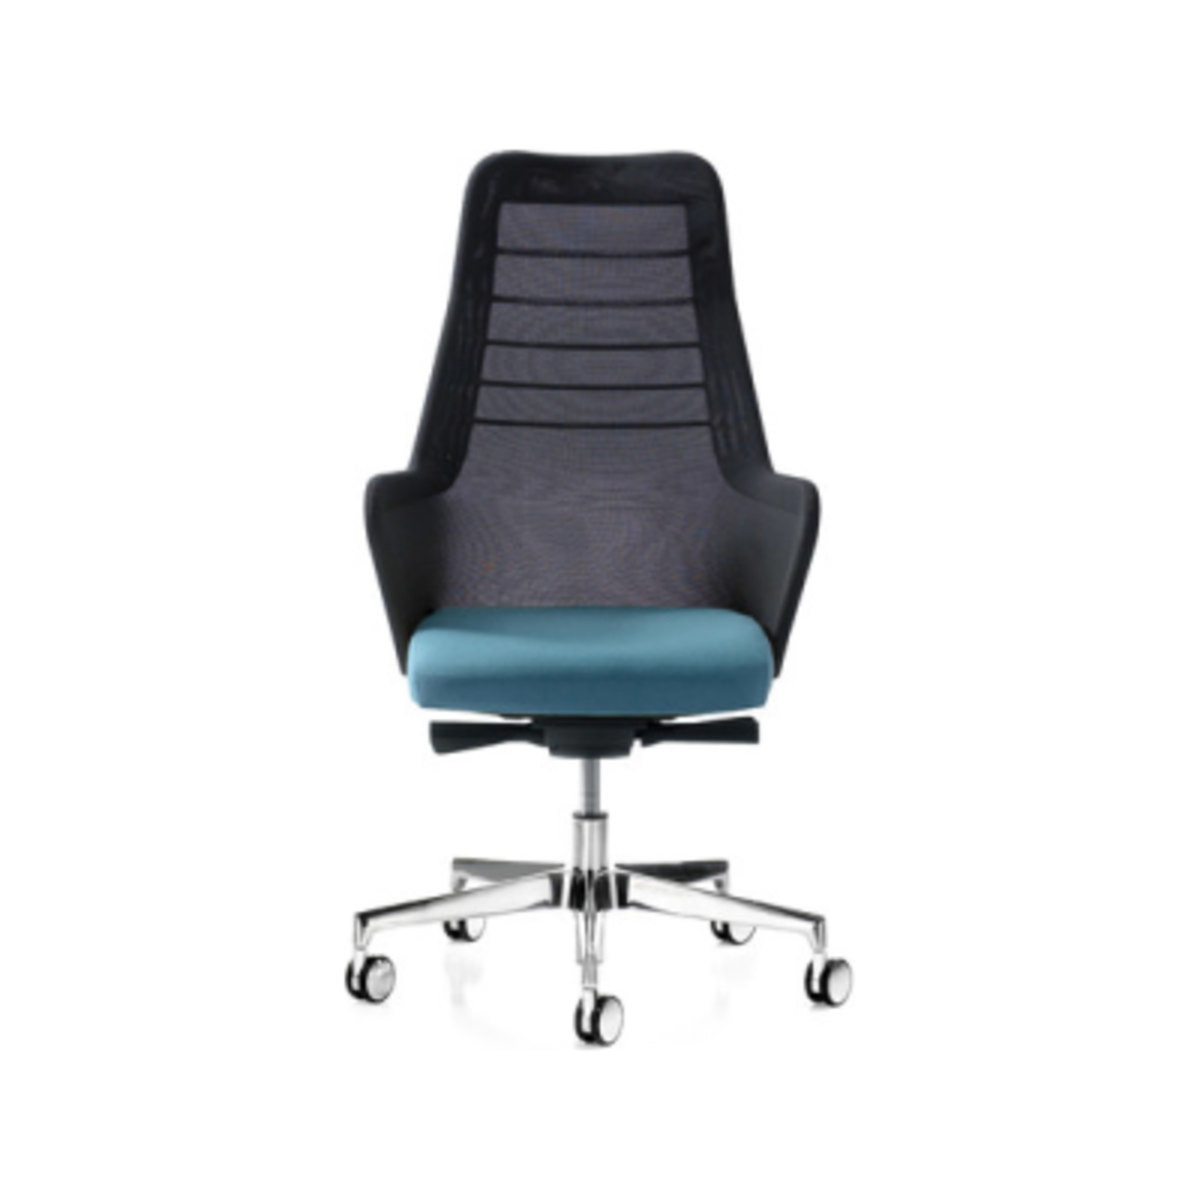 Miss Mesh Low Back Fix Base By Quinti Sedute Office Chairs